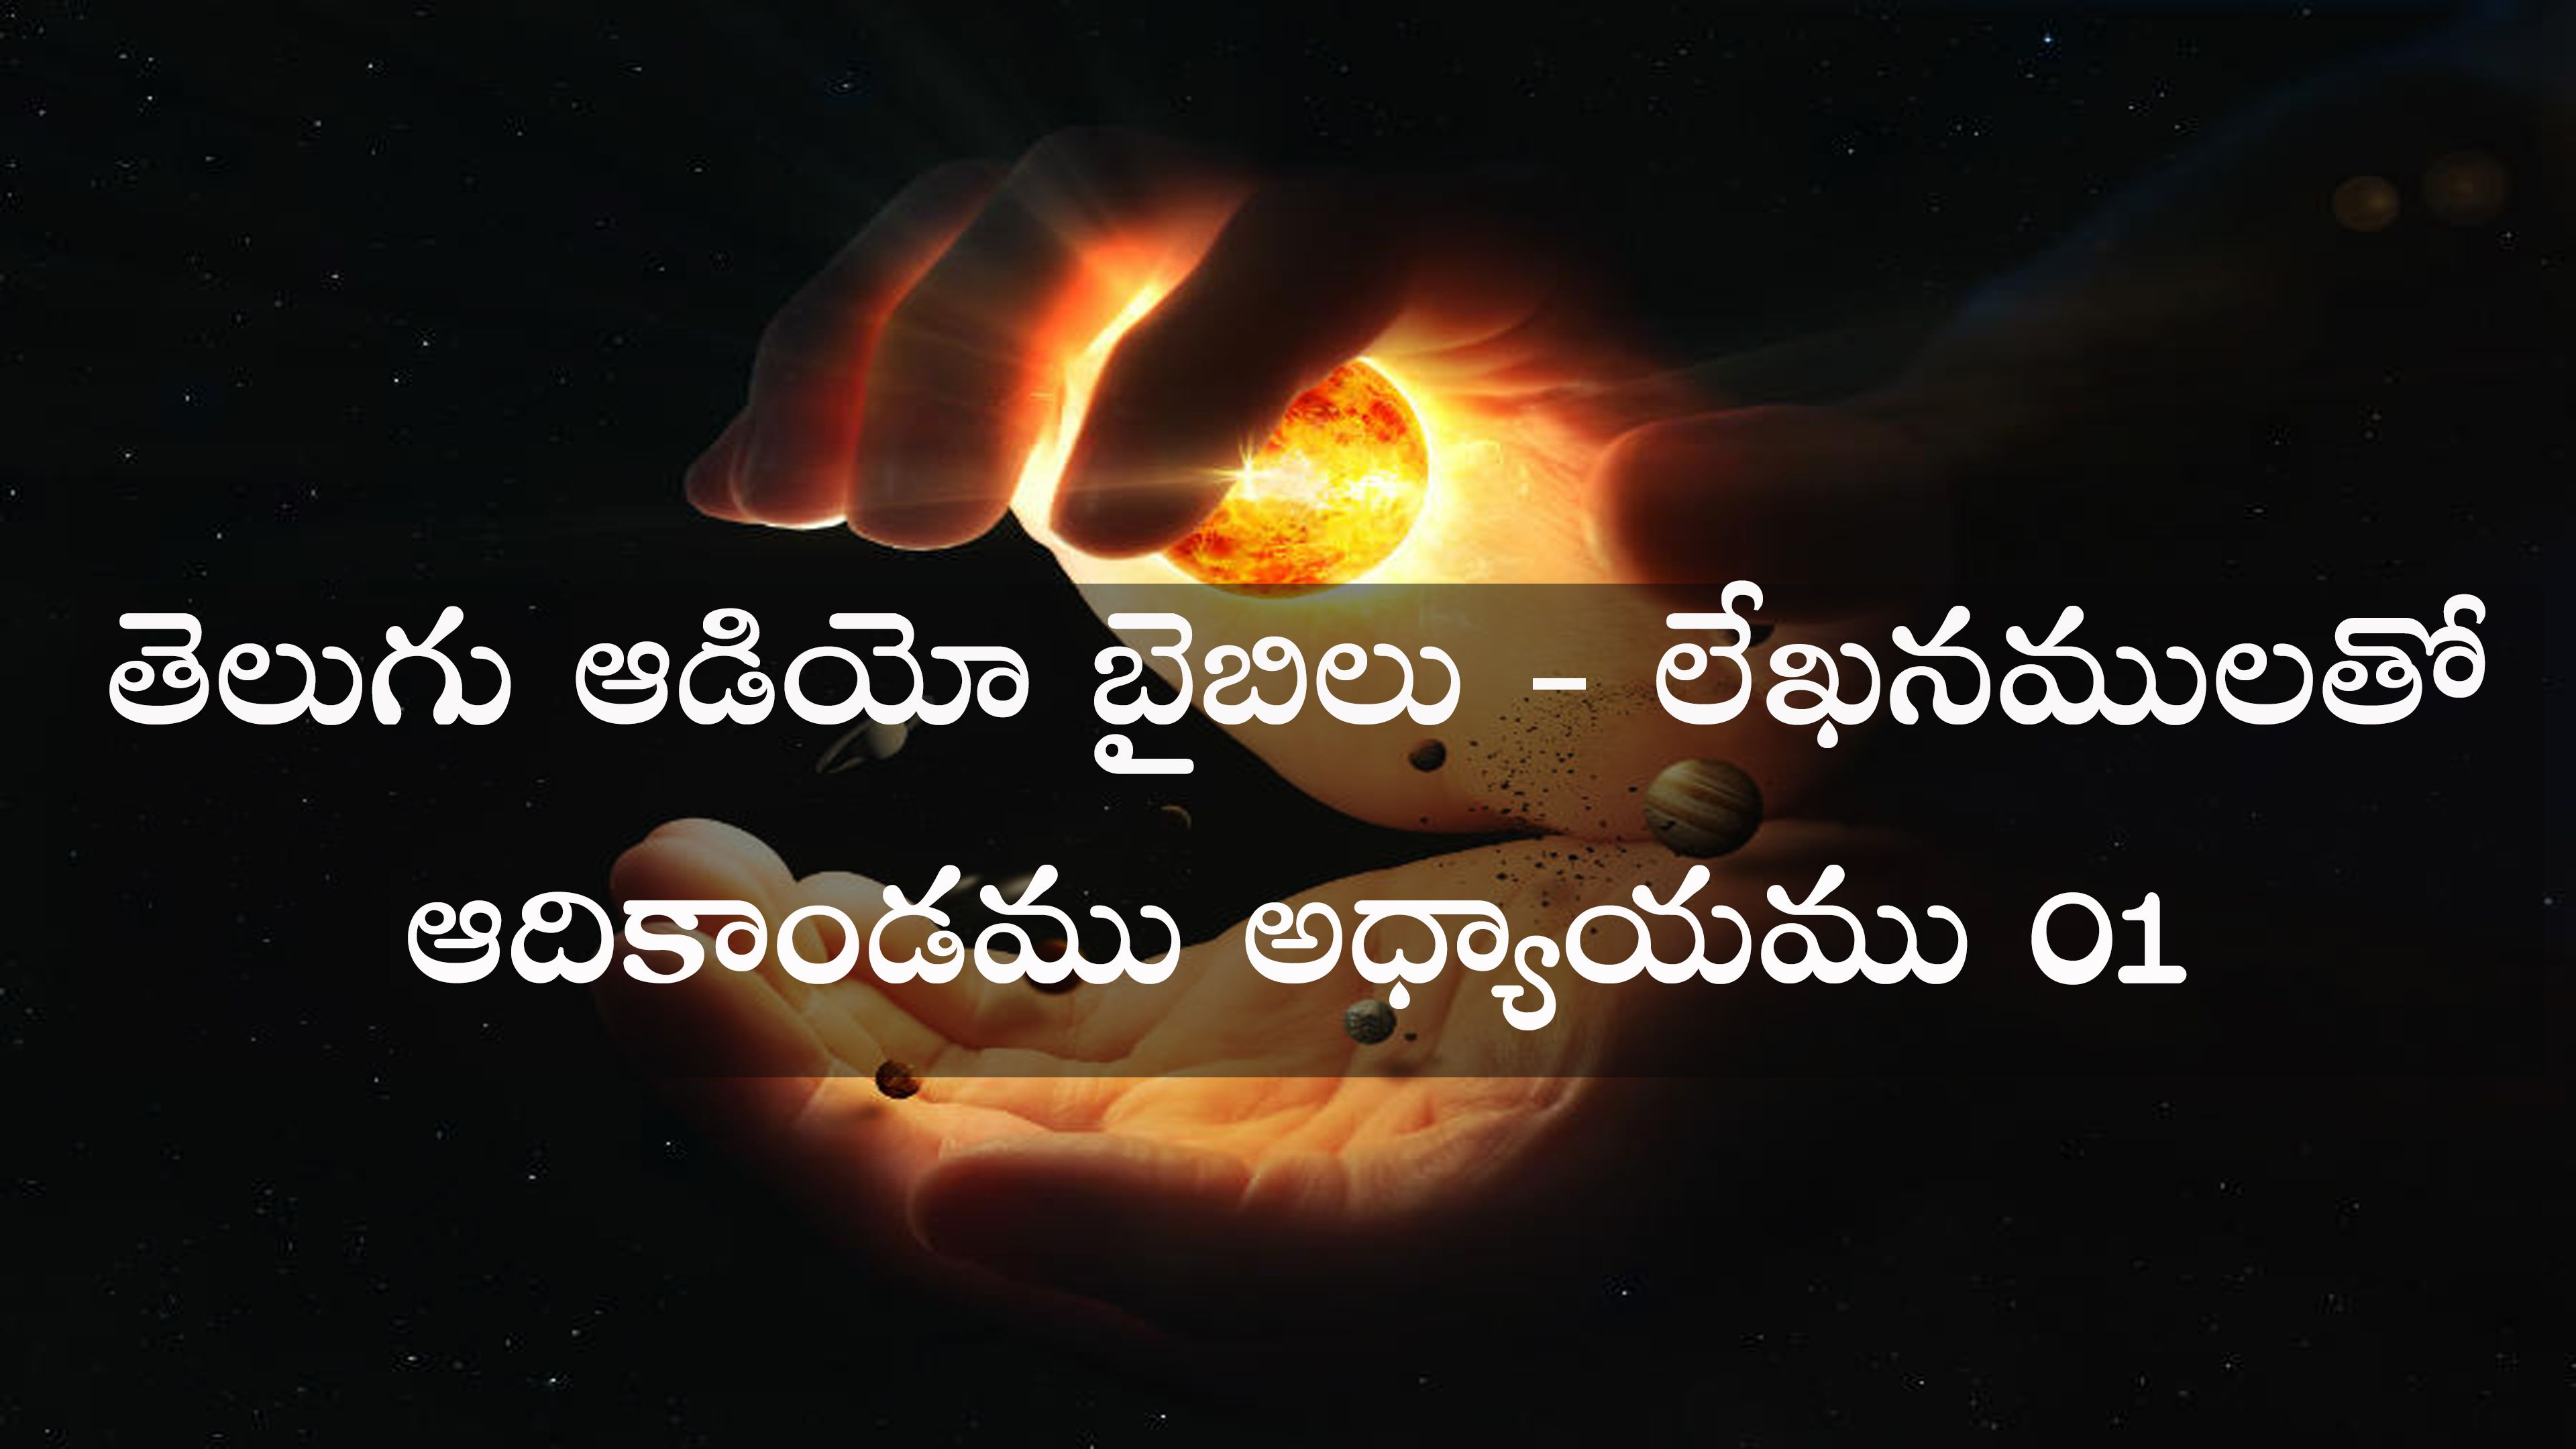 Telugu audio BIBLE - Genesis Chapter 01 with Verses | Telugu